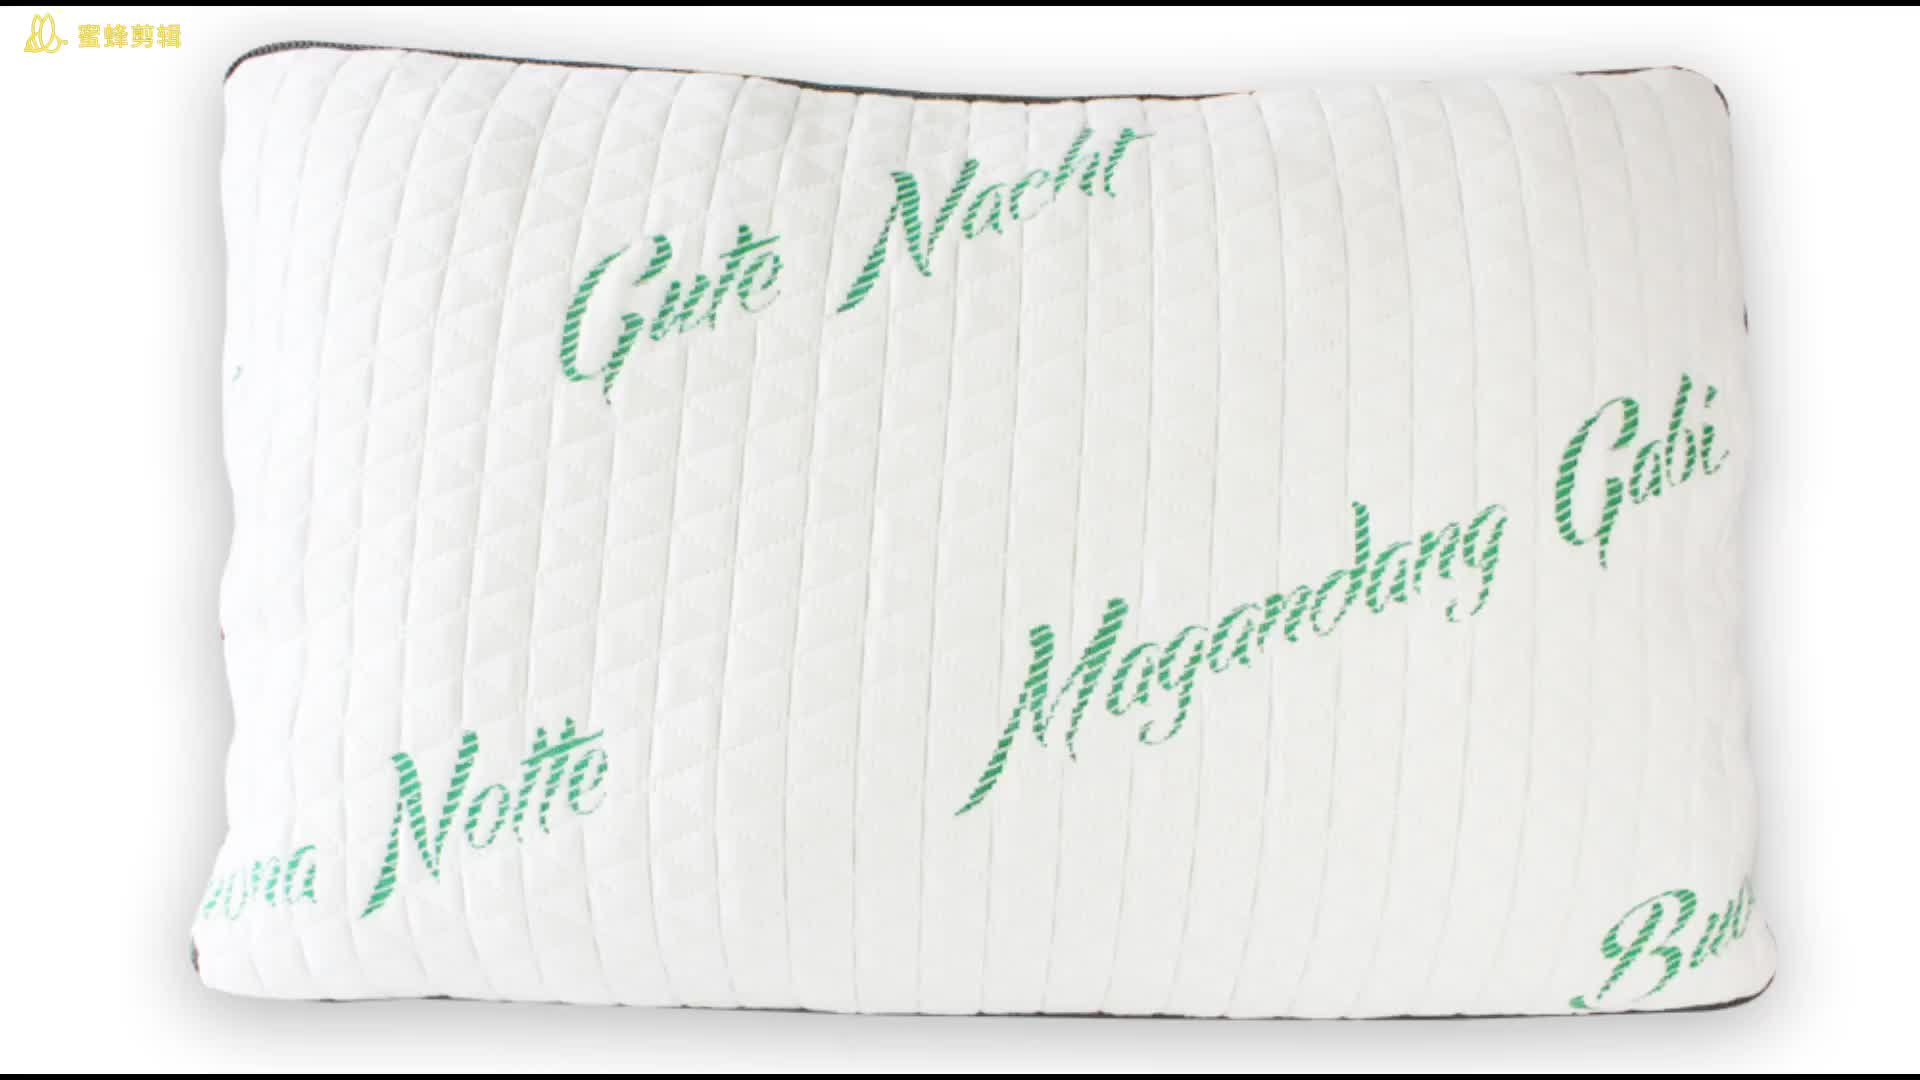 FREE SAMPLE! Shredded Memory Foam with Zippered Cover and Adjustable Hypoallergenic Cooling Gel Infused Memory Foam Filling